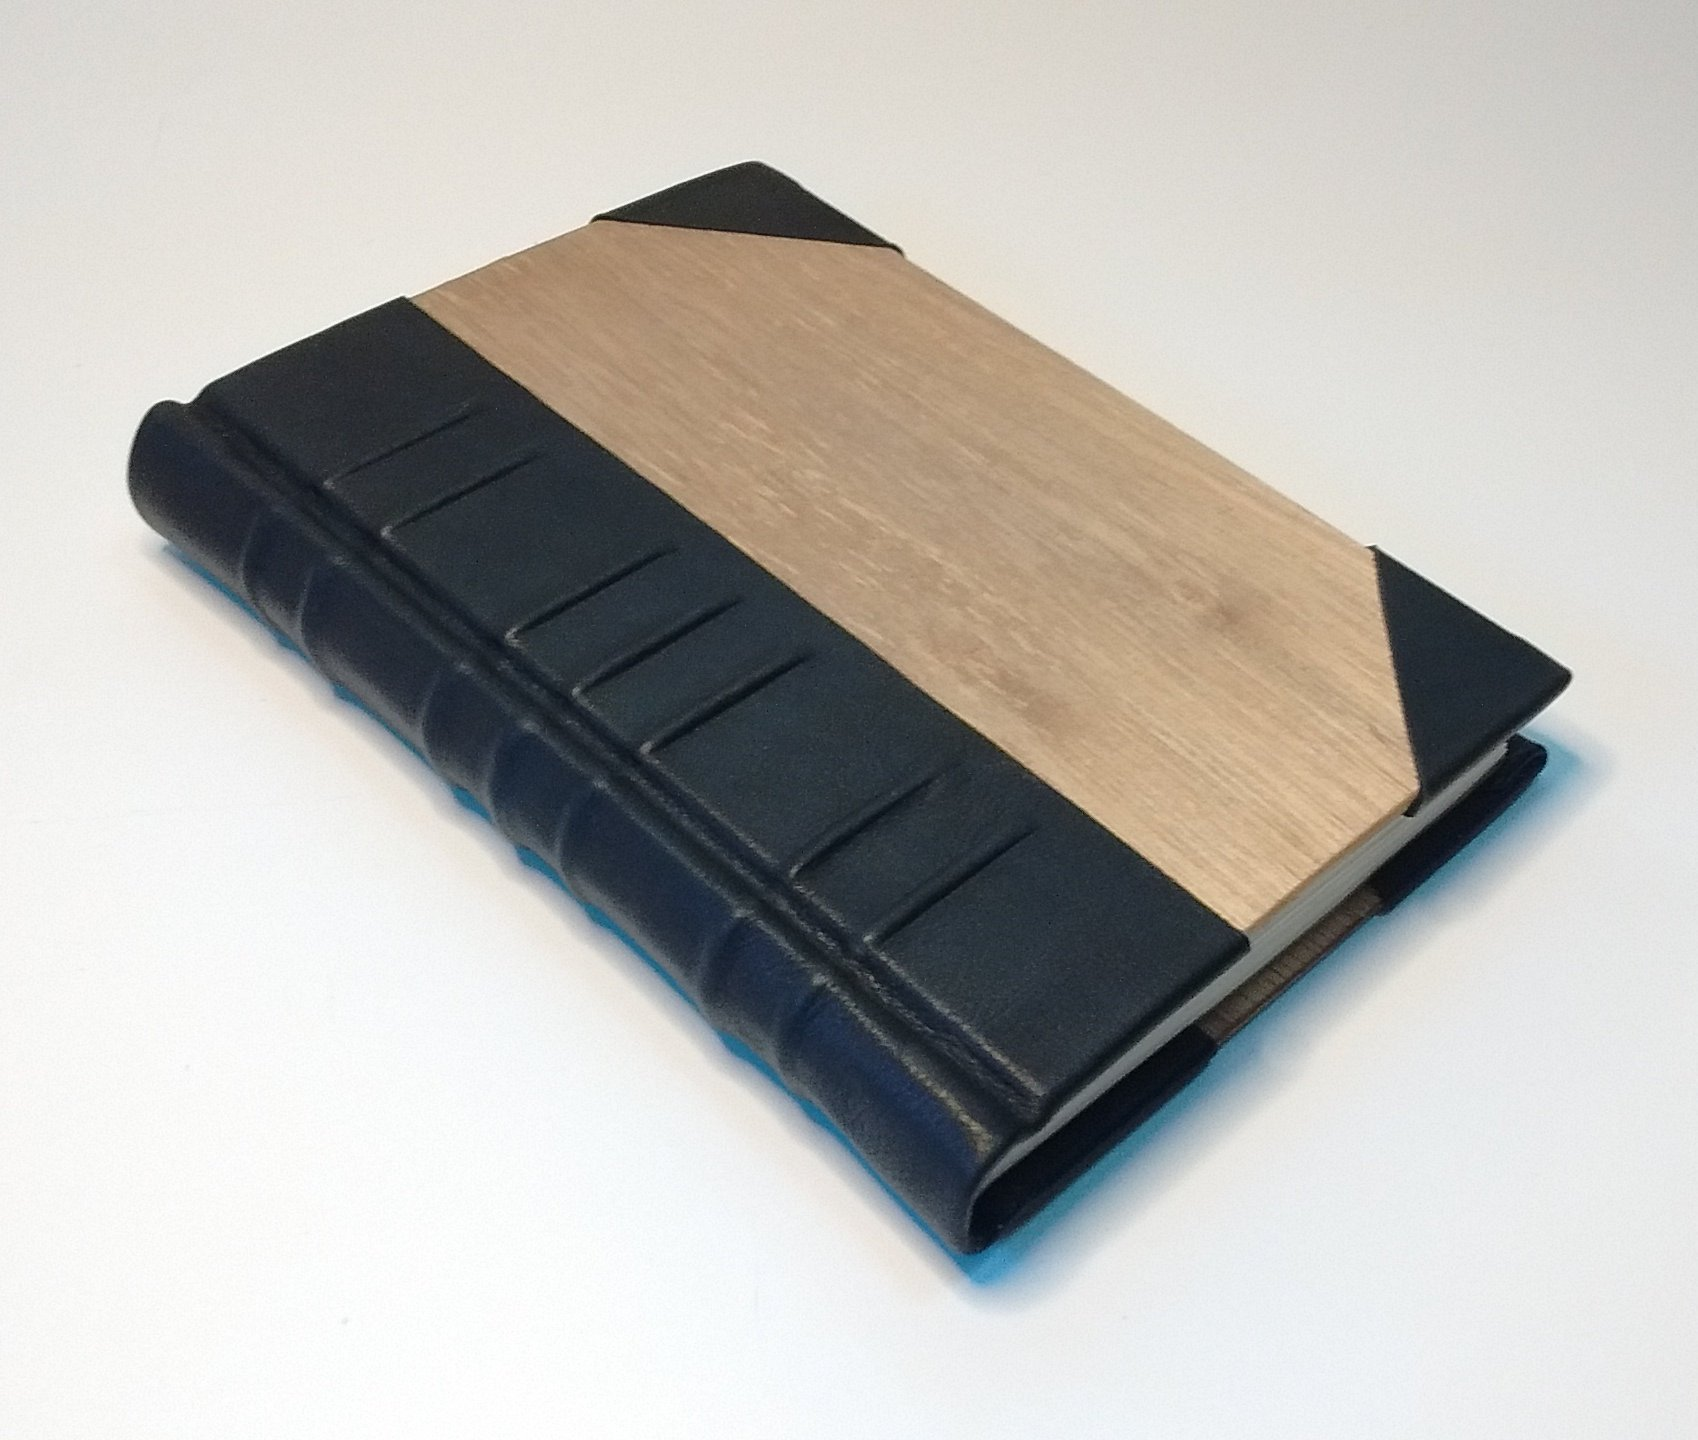 Elegant handmade book, case-bound, with raised bands, in wood and black leather. Journal, blank book, diary, sketchbook.